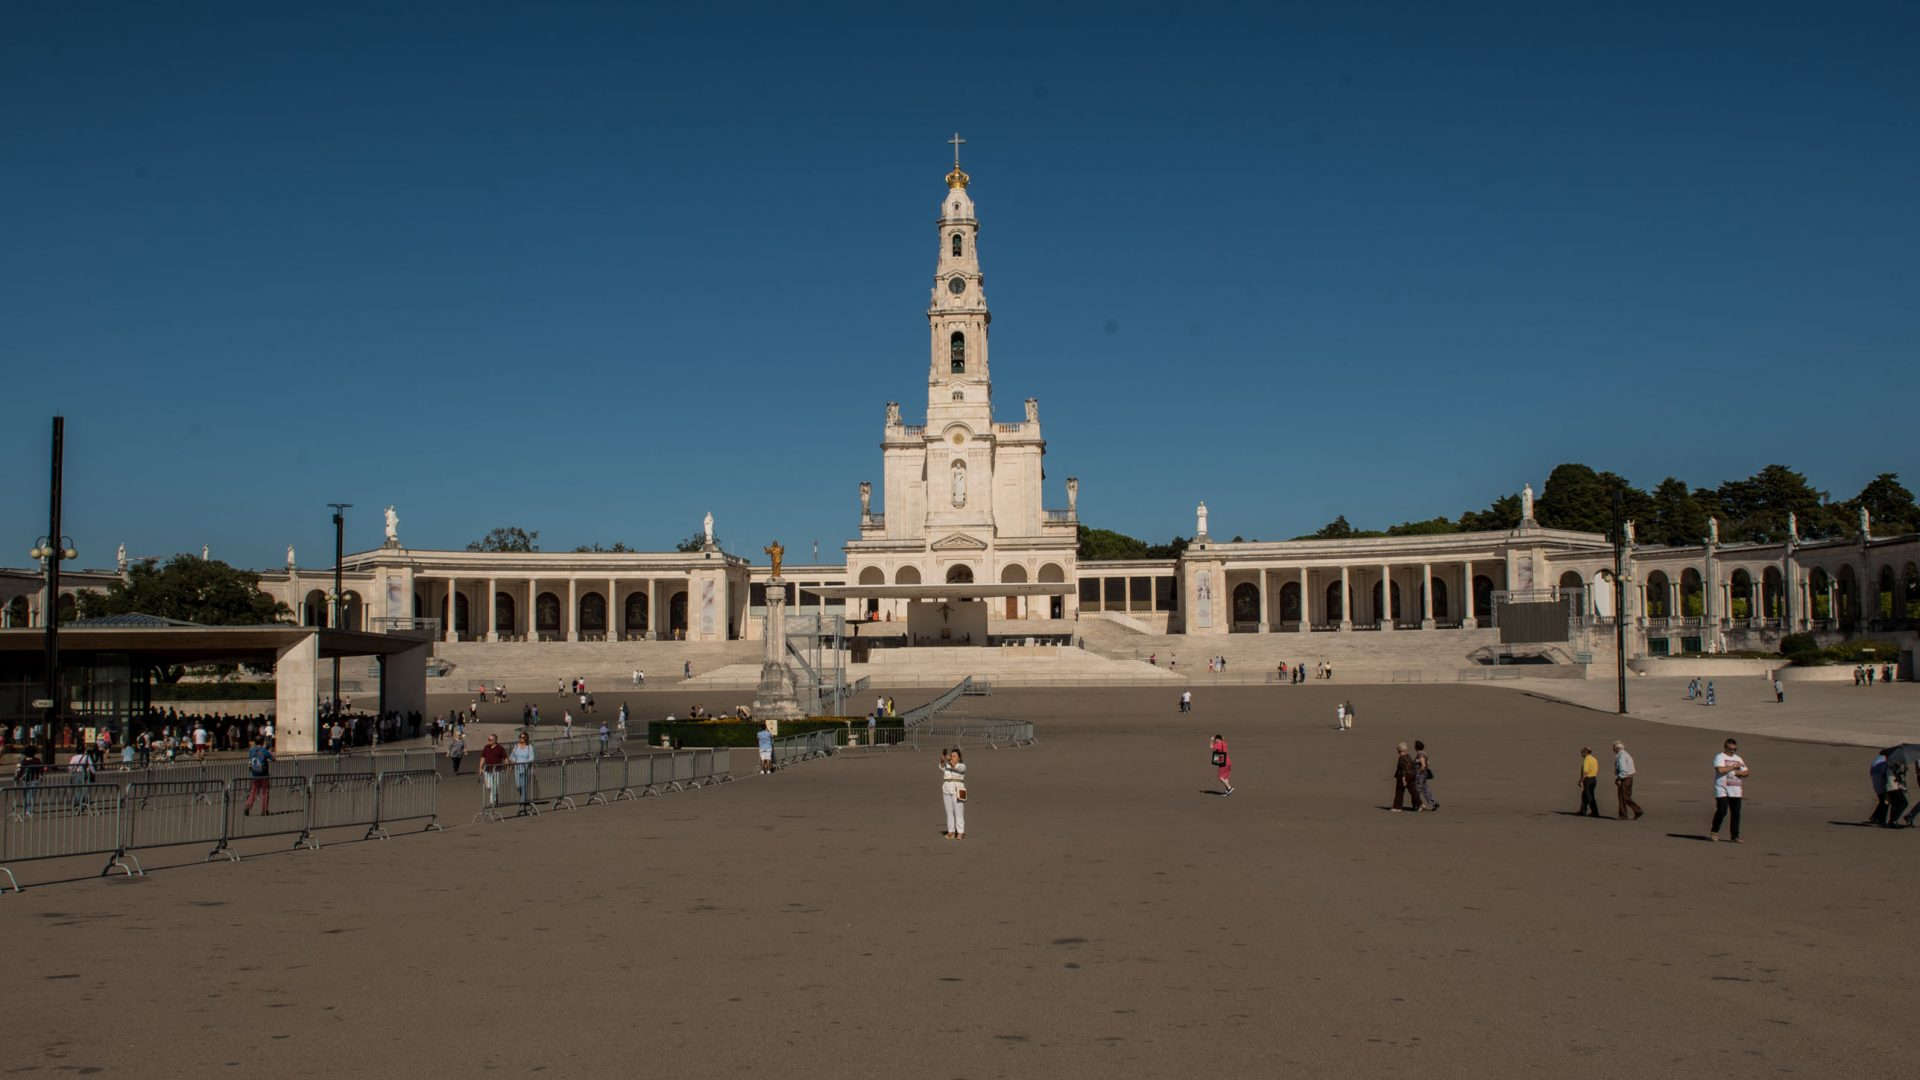 The Fatima Sanctuary & the powerful story within